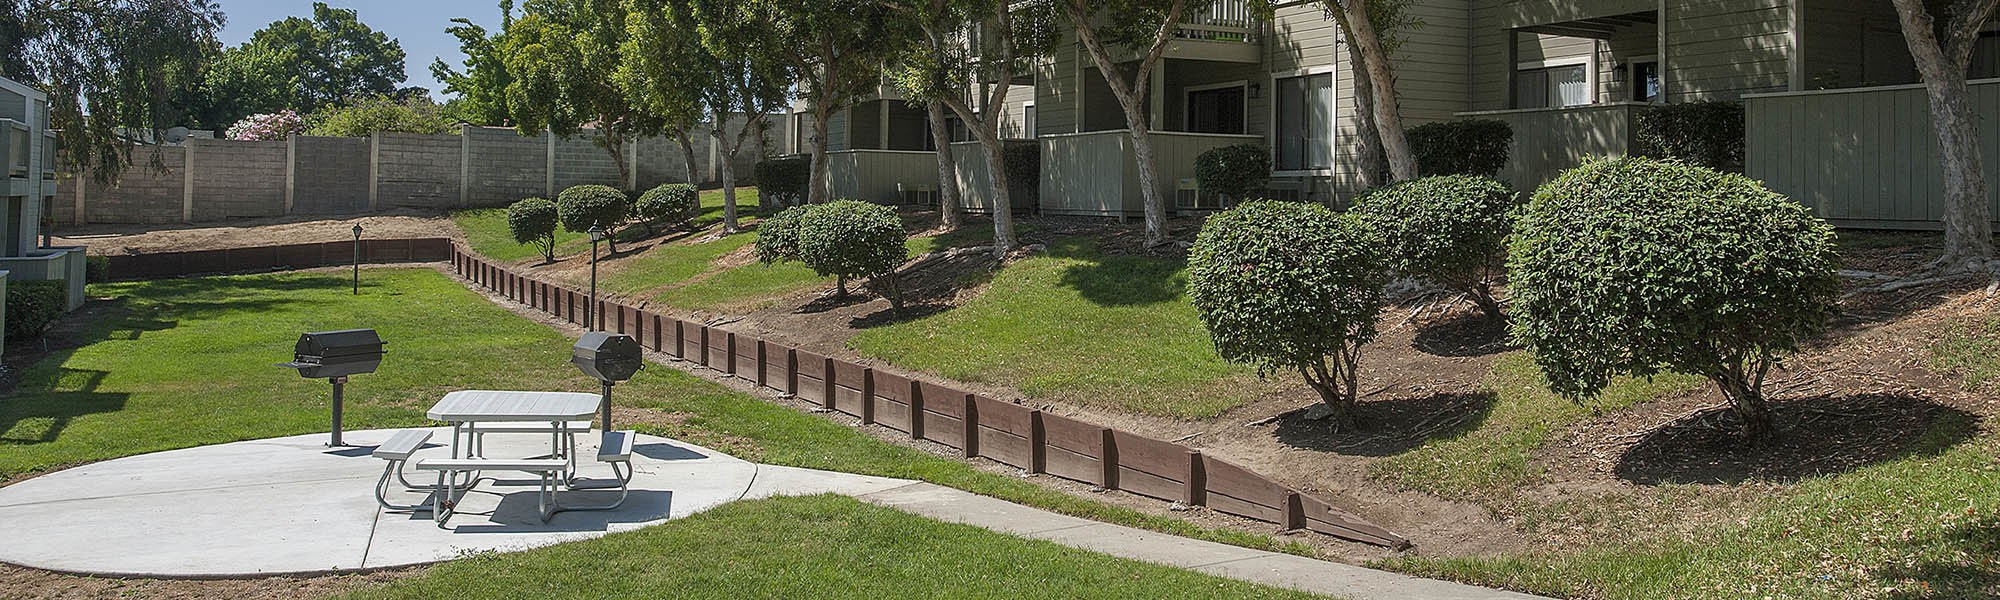 Read our privacy policy on our website for Sandpiper Village Apartment Homes